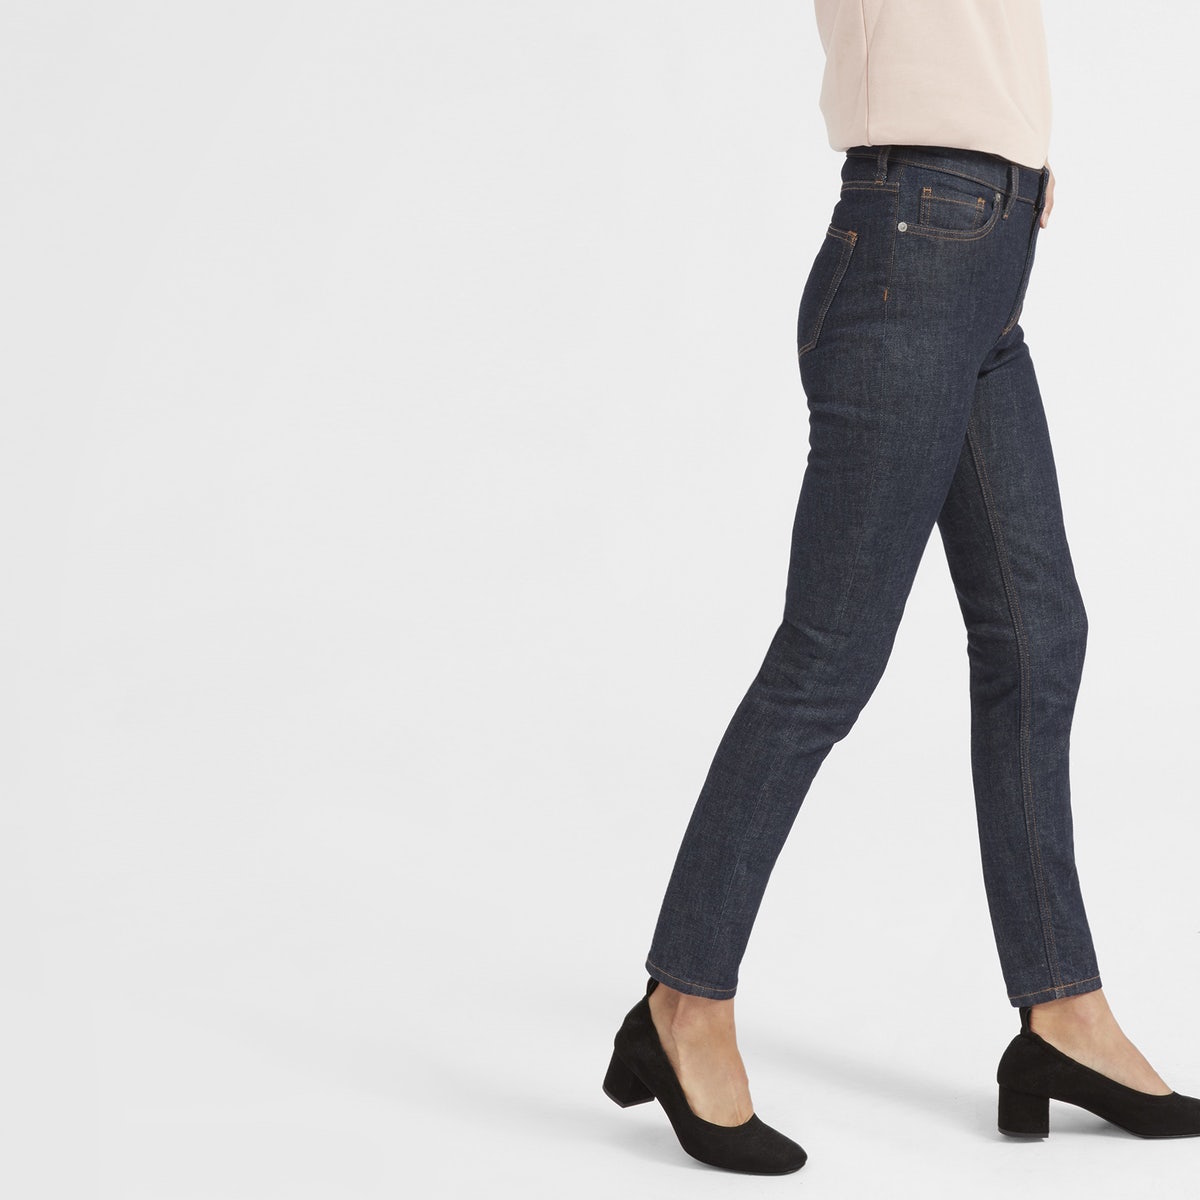 I Tried Everlane's High-Rise Skinny Jeans